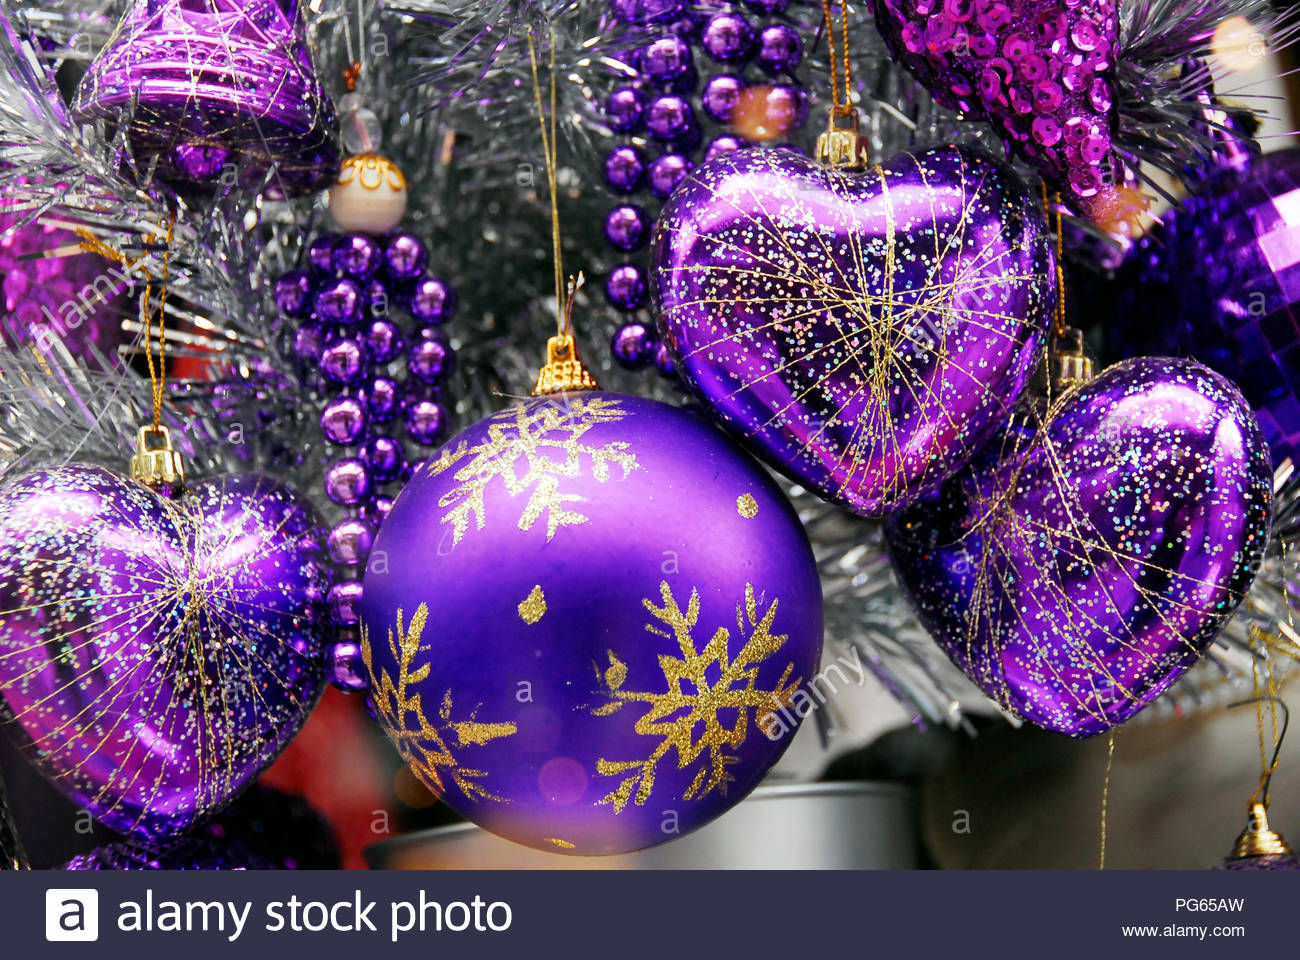 Blue Silver Colored Christmas Decoration Baubles With Texture On A Christmas Tree Stock Photo Alamy